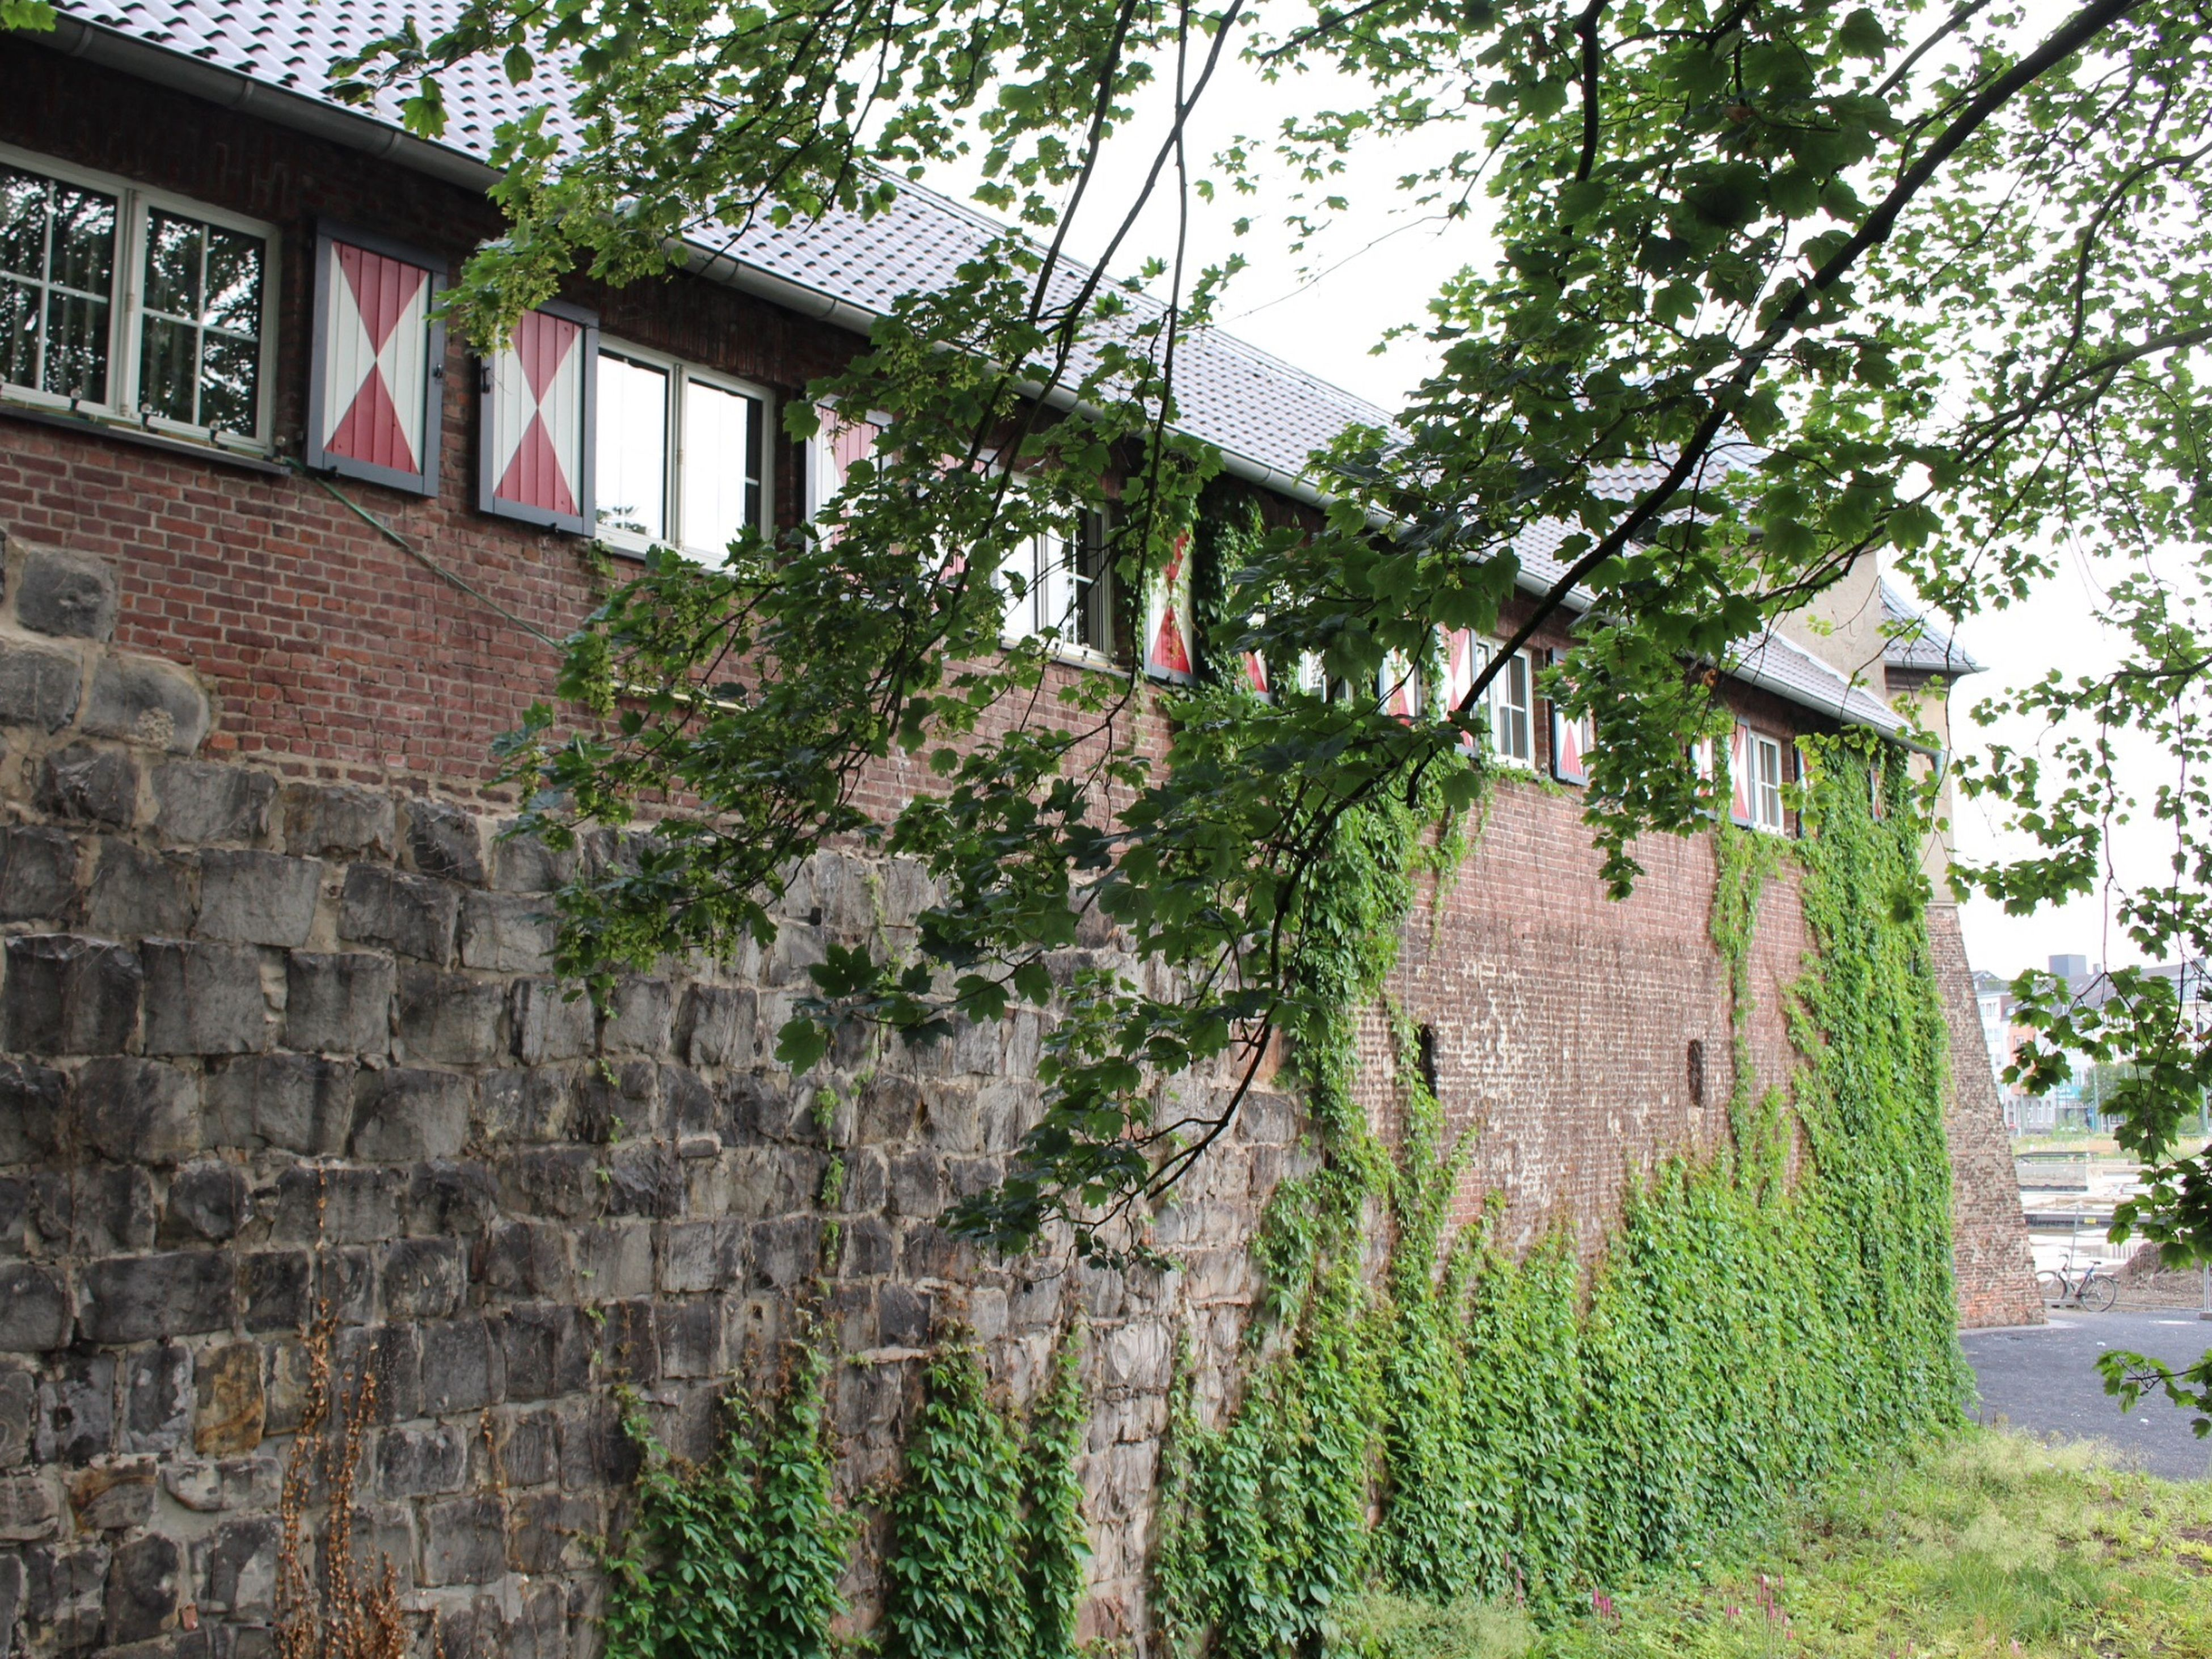 architecture, built structure, building exterior, house, tree, plant, old, abandoned, residential structure, growth, ivy, weathered, stone wall, residential building, damaged, day, wall - building feature, obsolete, run-down, low angle view